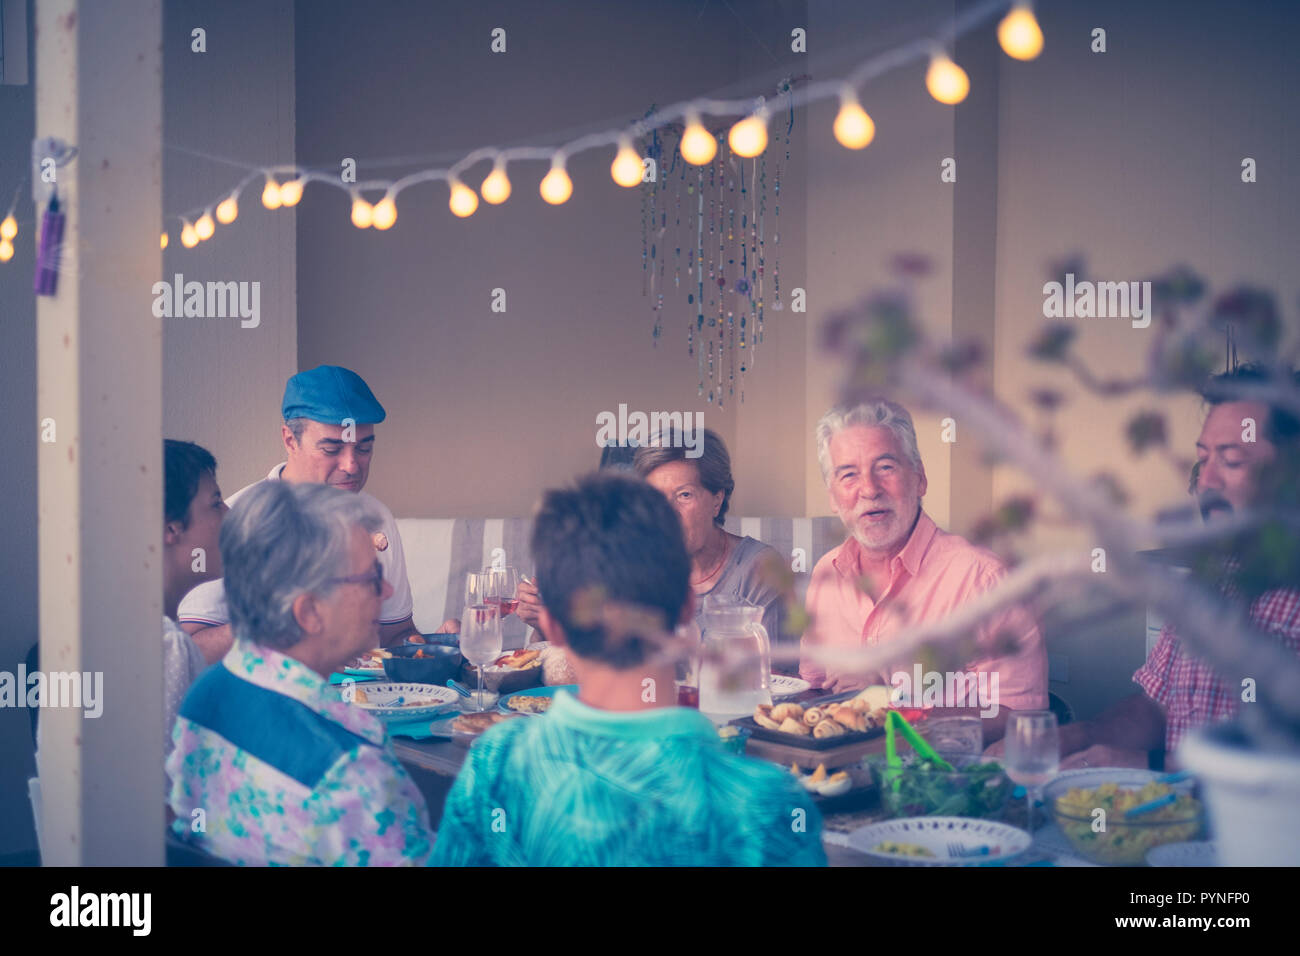 Group of people dining together at home on the terrace outdoor having fun and smile. friednship and friends event. Caucasian men and women with differ - Stock Image